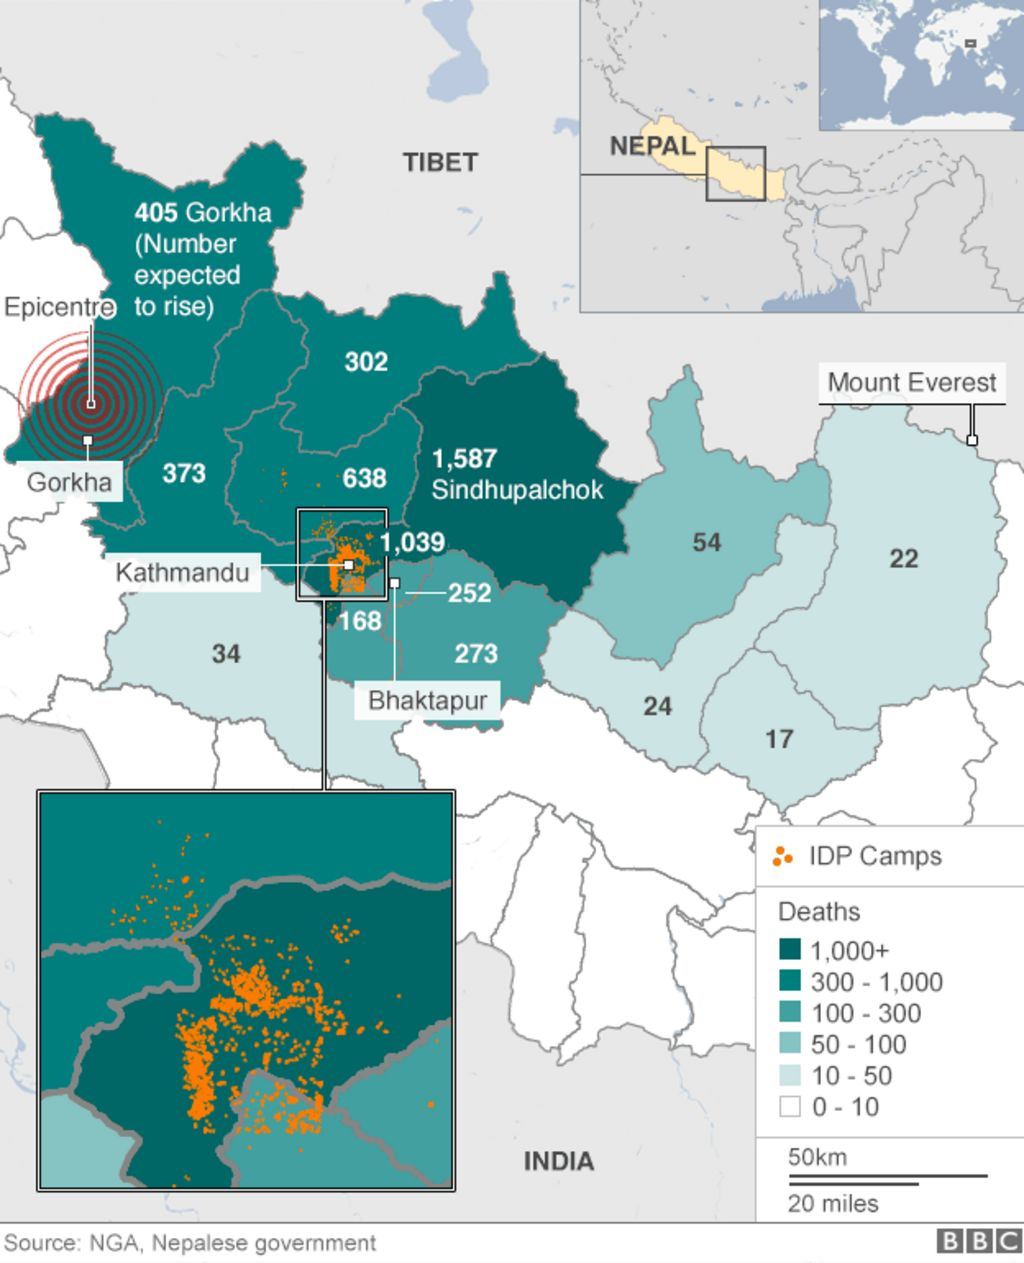 Nepal earthquakes: Devastation in maps and images - BBC News